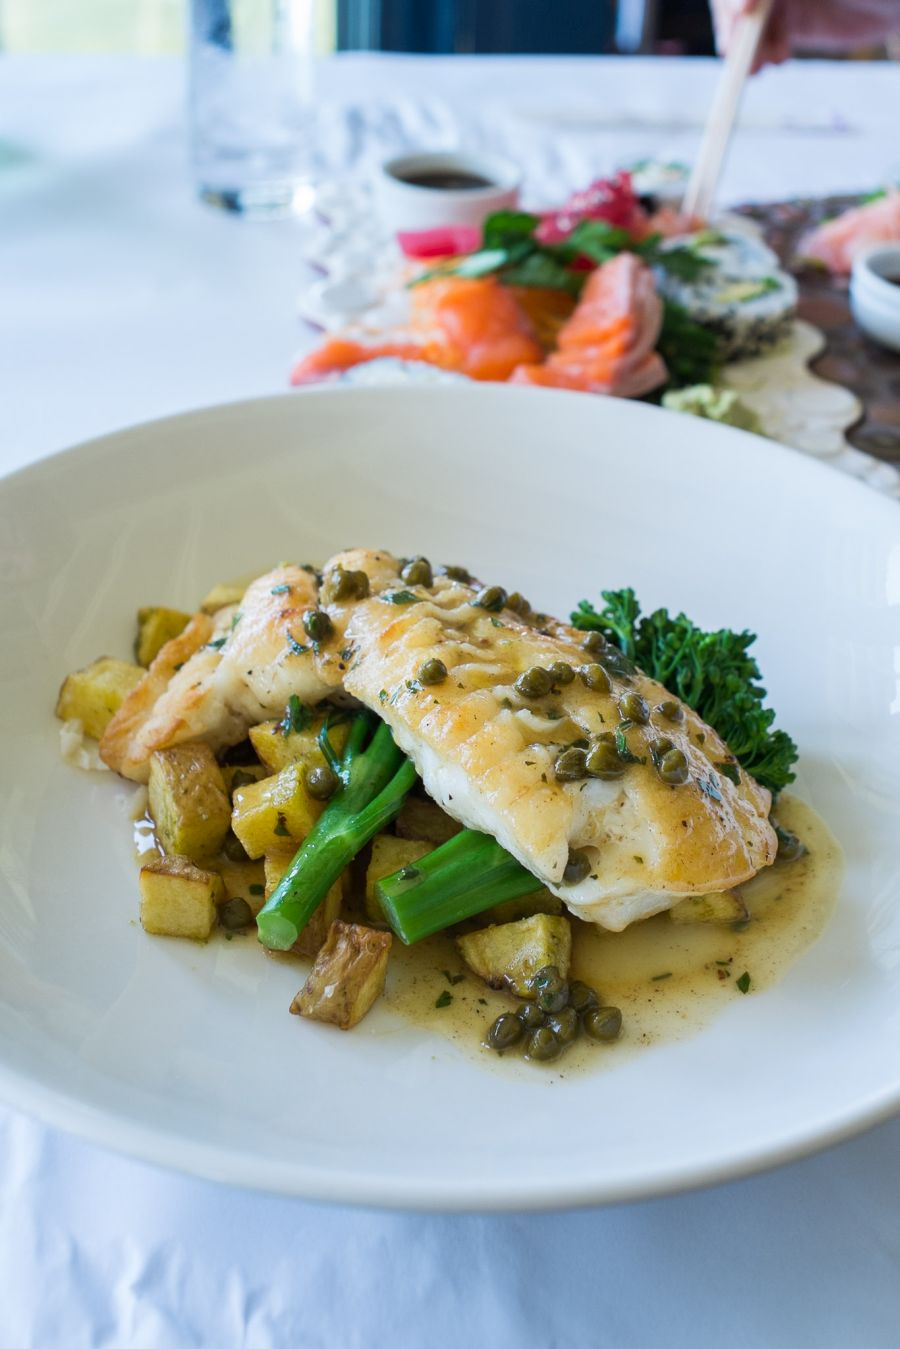 Fish special - groper gently  grilled, with broccolini and skillet potatoes with lemon caper sauce (AU$52)